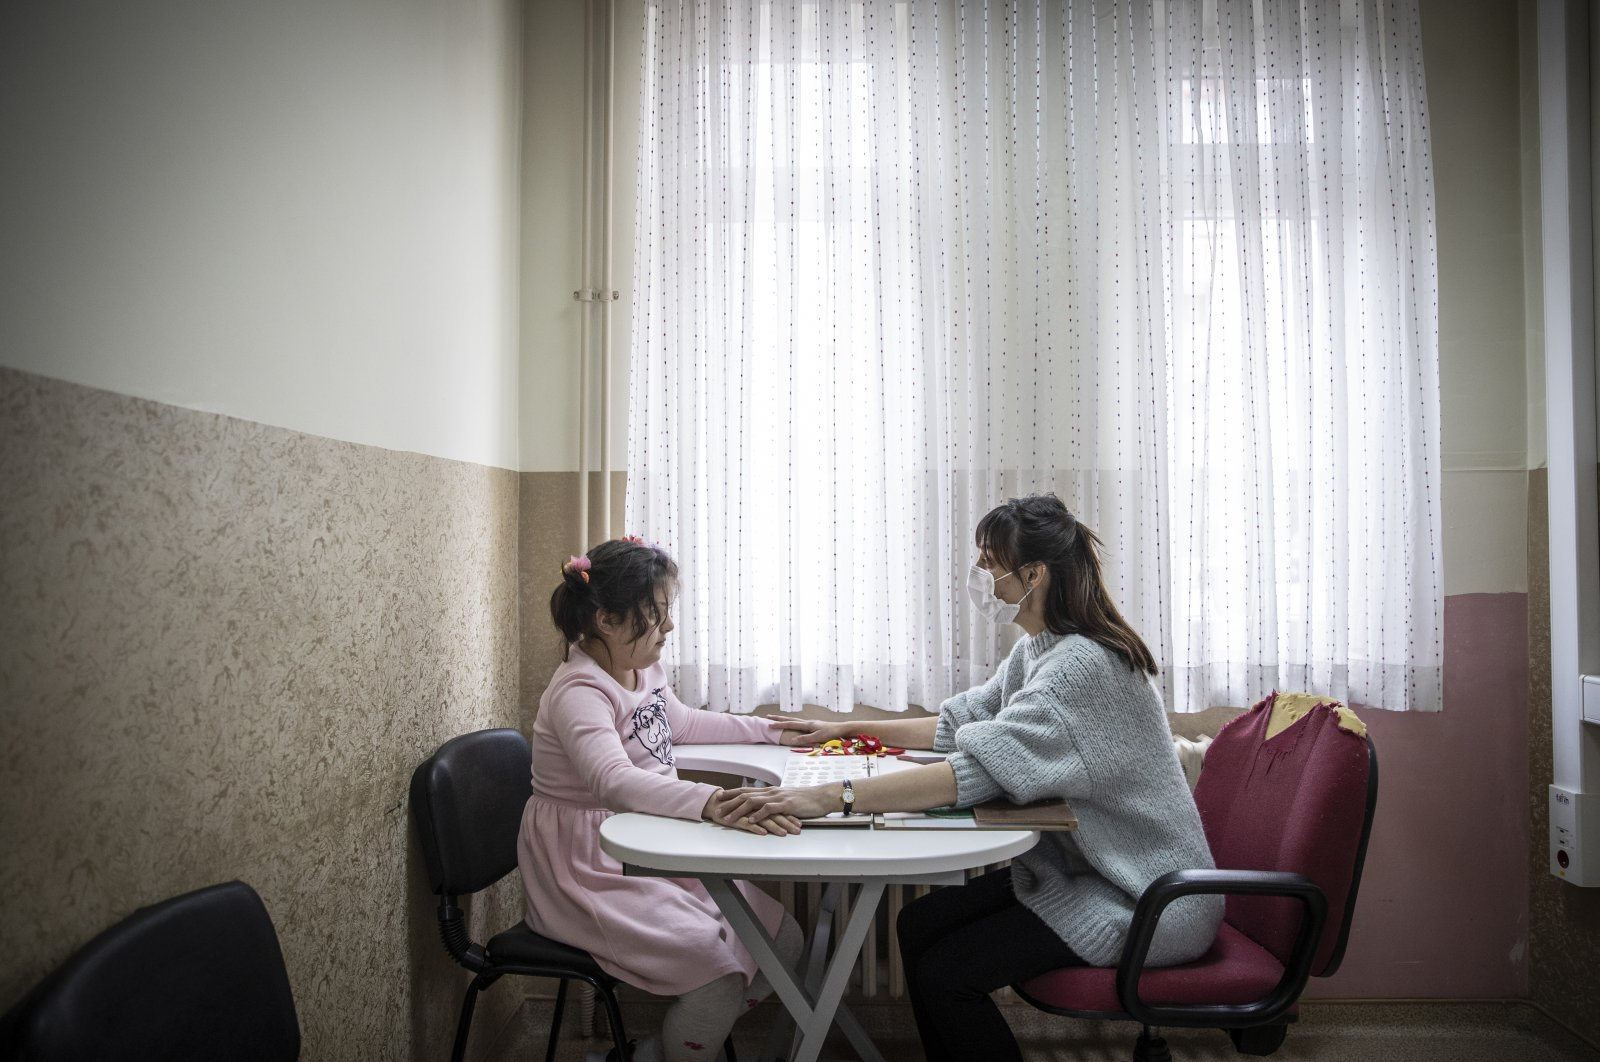 An autistic student (L) attends a session with her teacher at a special education class in a school, in the capital Ankara, Turkey, April 2, 2021. (AA PHOTO)